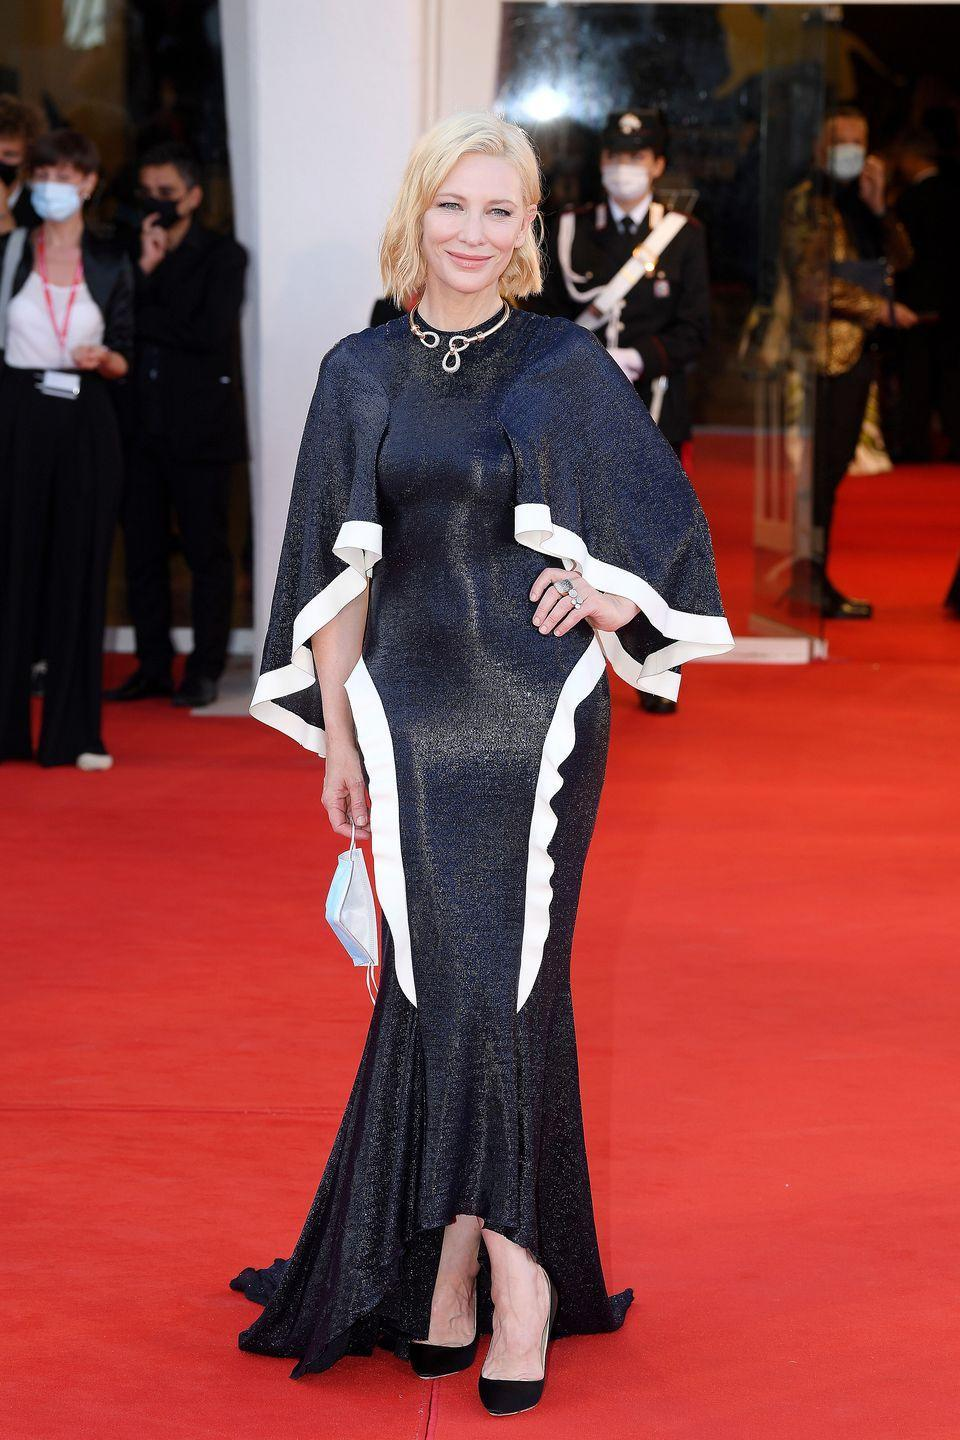 <p>Cate Blanchett wears a shimmery navy blue dress with voluminous sleeves by Esteban Salazar, black pumps by Clergerie, and jewelry by Pomellato. </p>